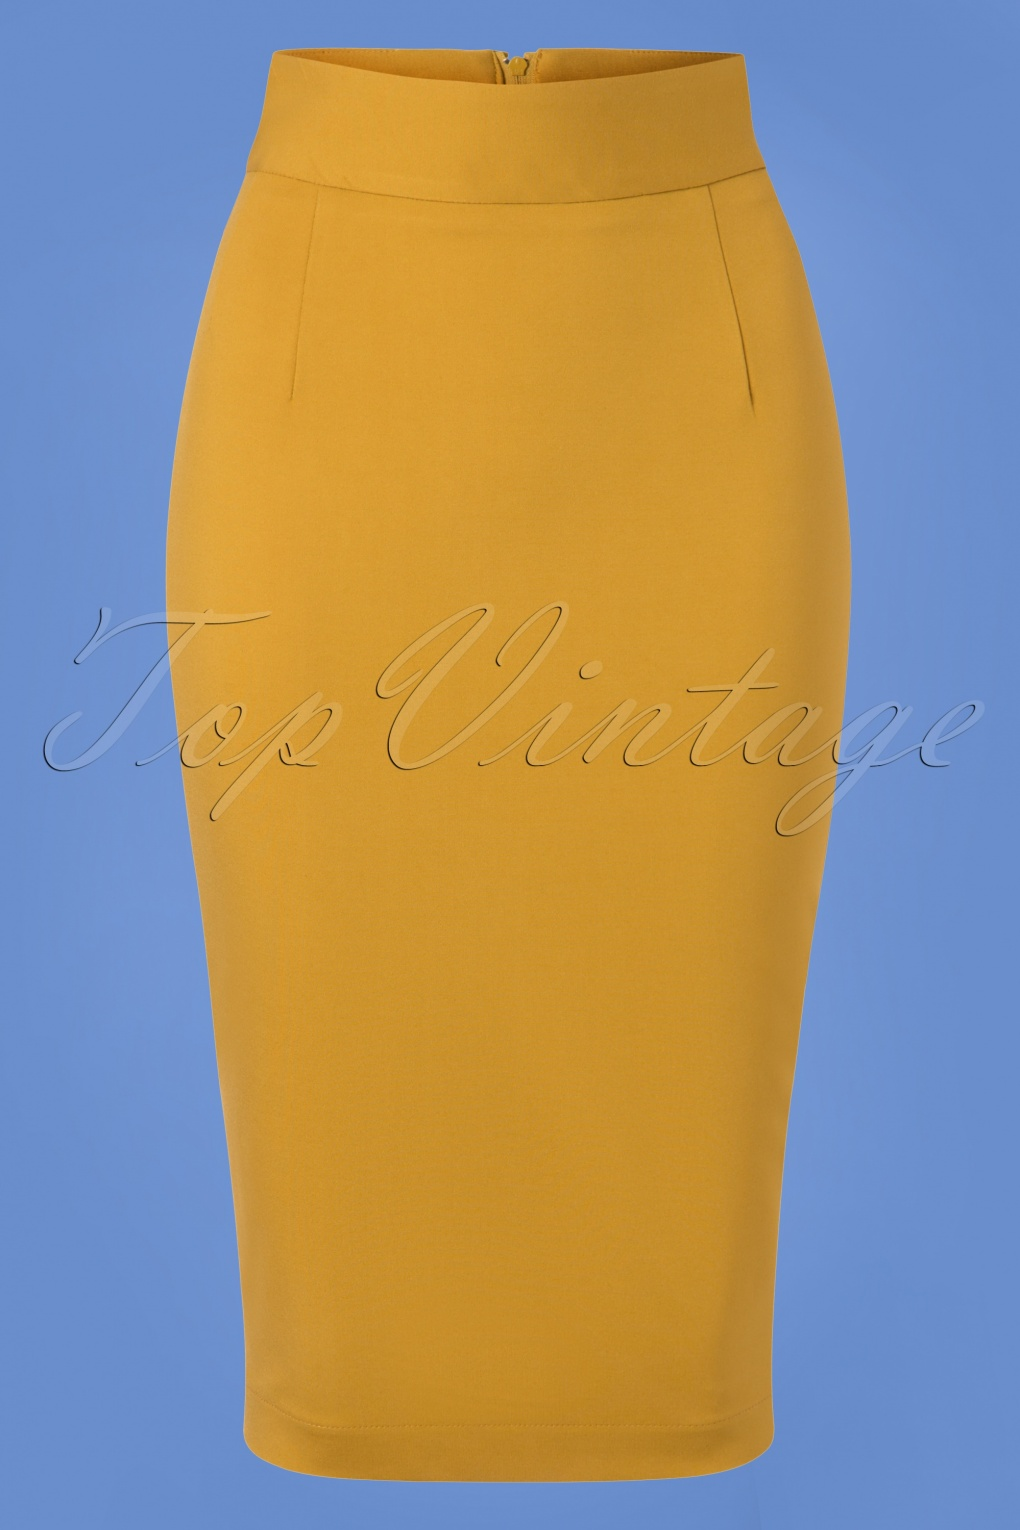 1950s Swing Skirt, Poodle Skirt, Pencil Skirts 50s Classic Pencil Skirt in Mustard Yellow £60.14 AT vintagedancer.com